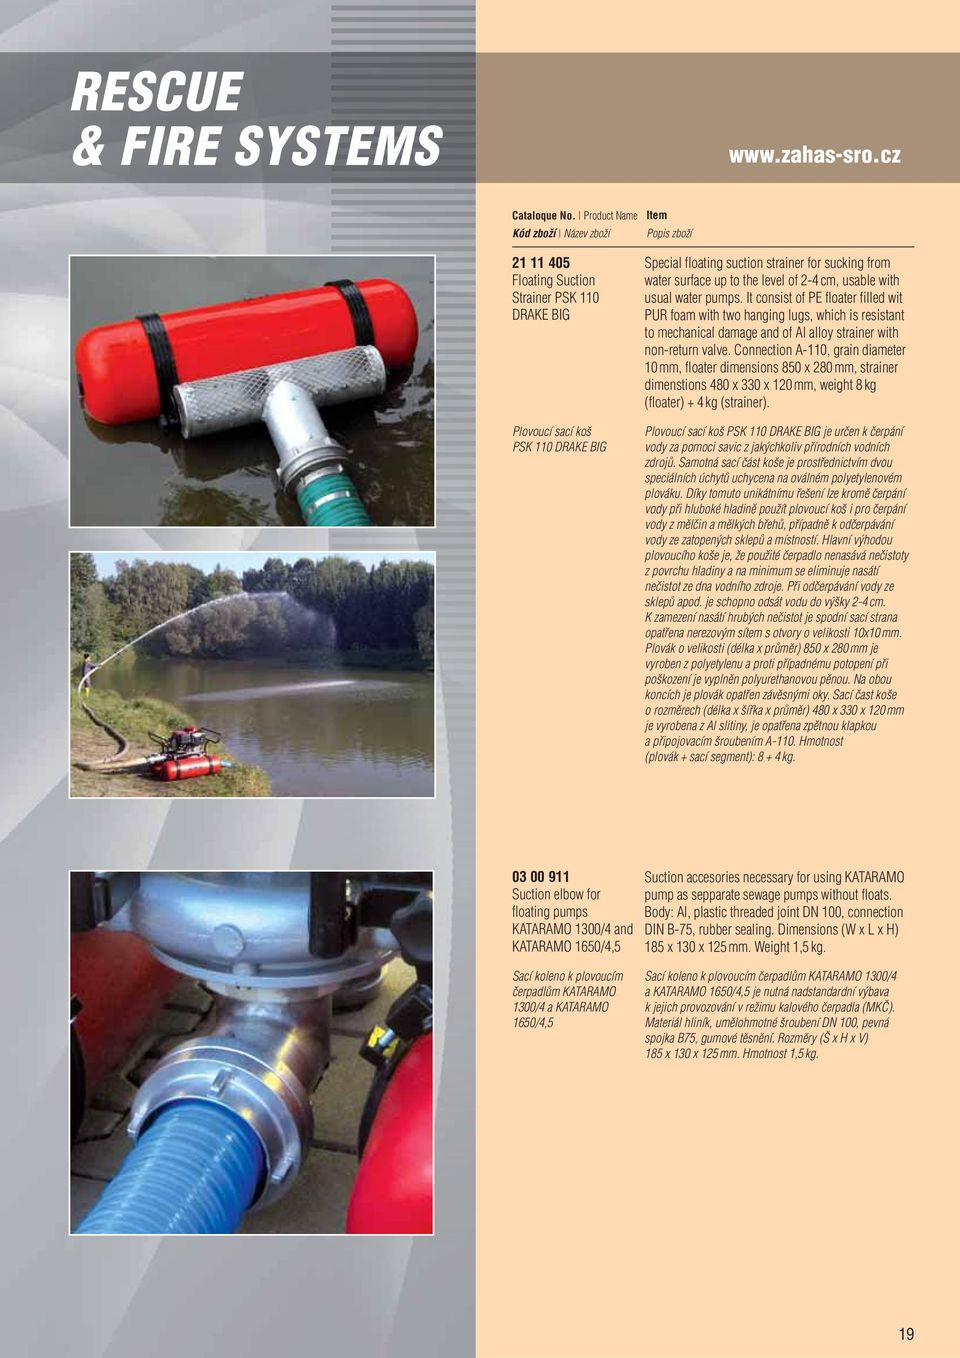 usual water pumps. It consist of PE floater filled wit PUR foam with two hanging lugs, which is resistant to mechanical damage and of Al alloy strainer with non-return valve.